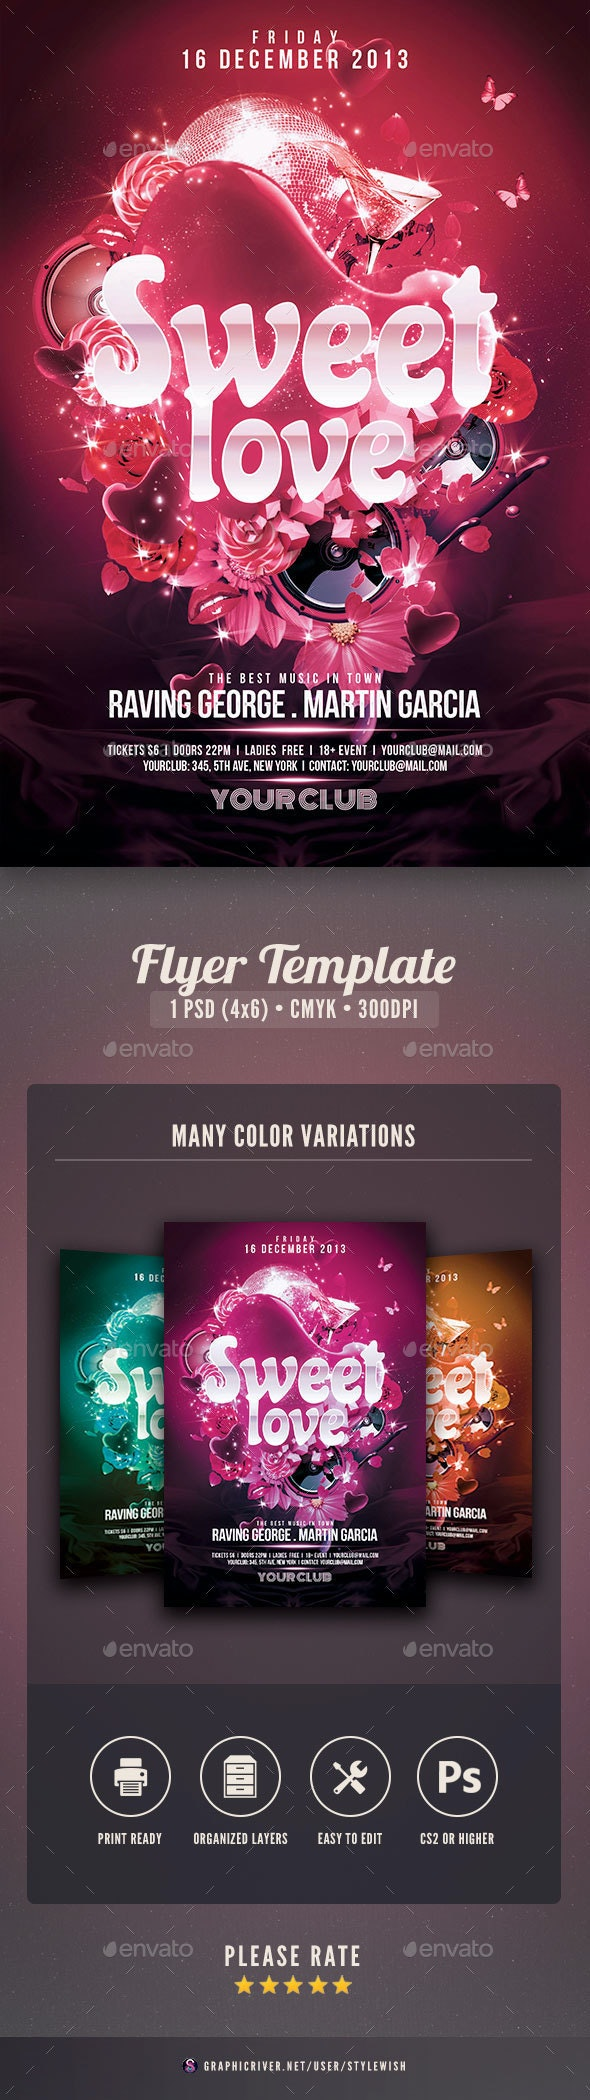 Sweet Love Flyer - Clubs & Parties Events